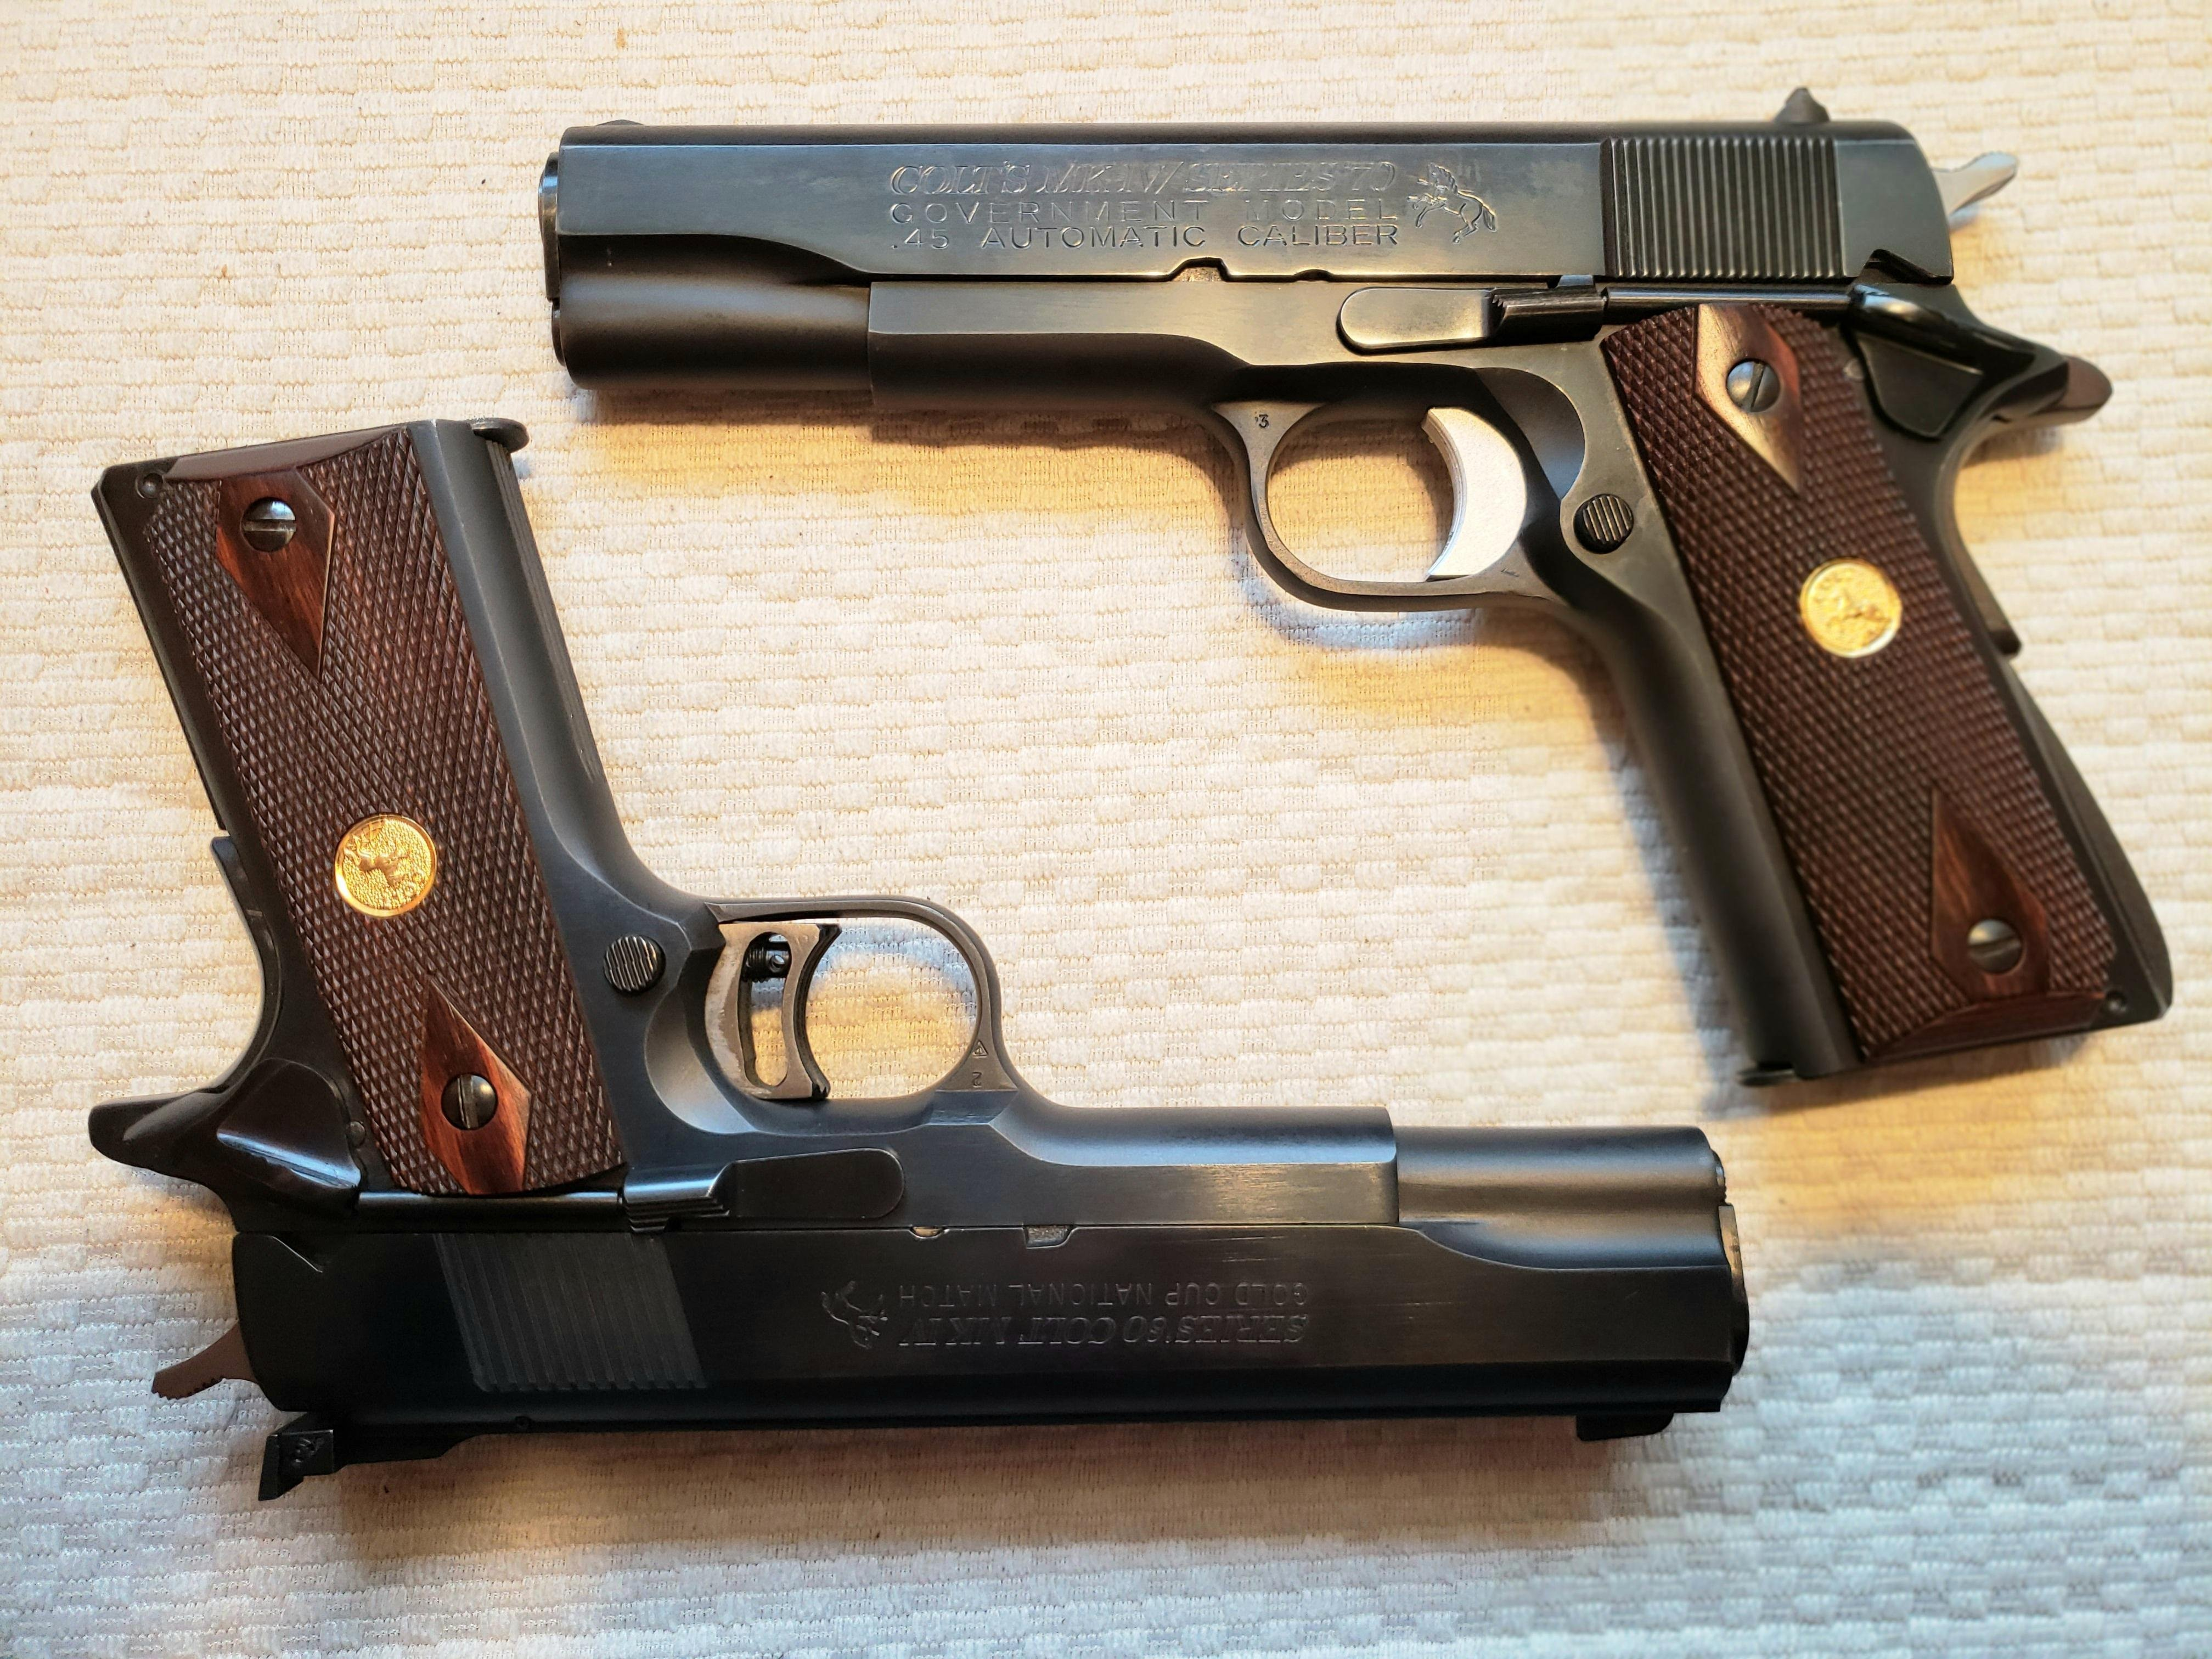 Click image for larger version  Name:20190324_093415 Colt S 70 Colt Gold cup.jpg Views:19 Size:1.23 MB ID:568910